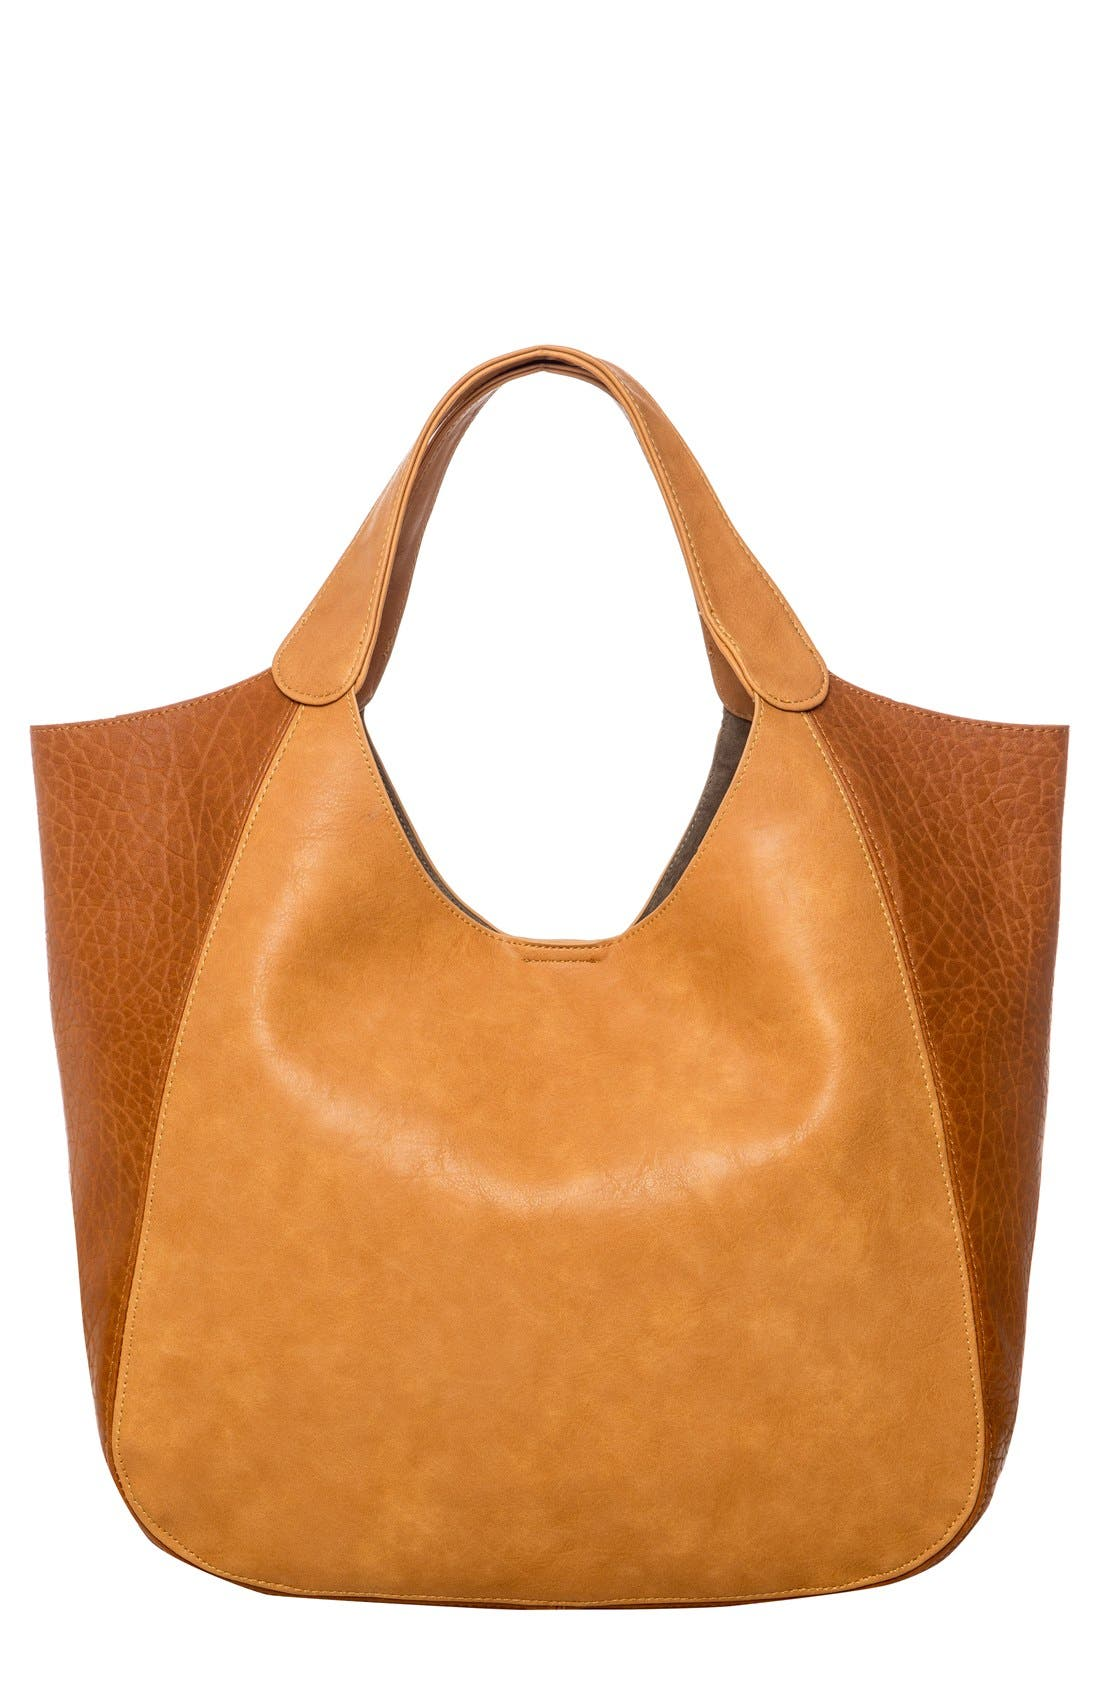 Urban Originals 'Masterpiece' Vegan Leather Tote